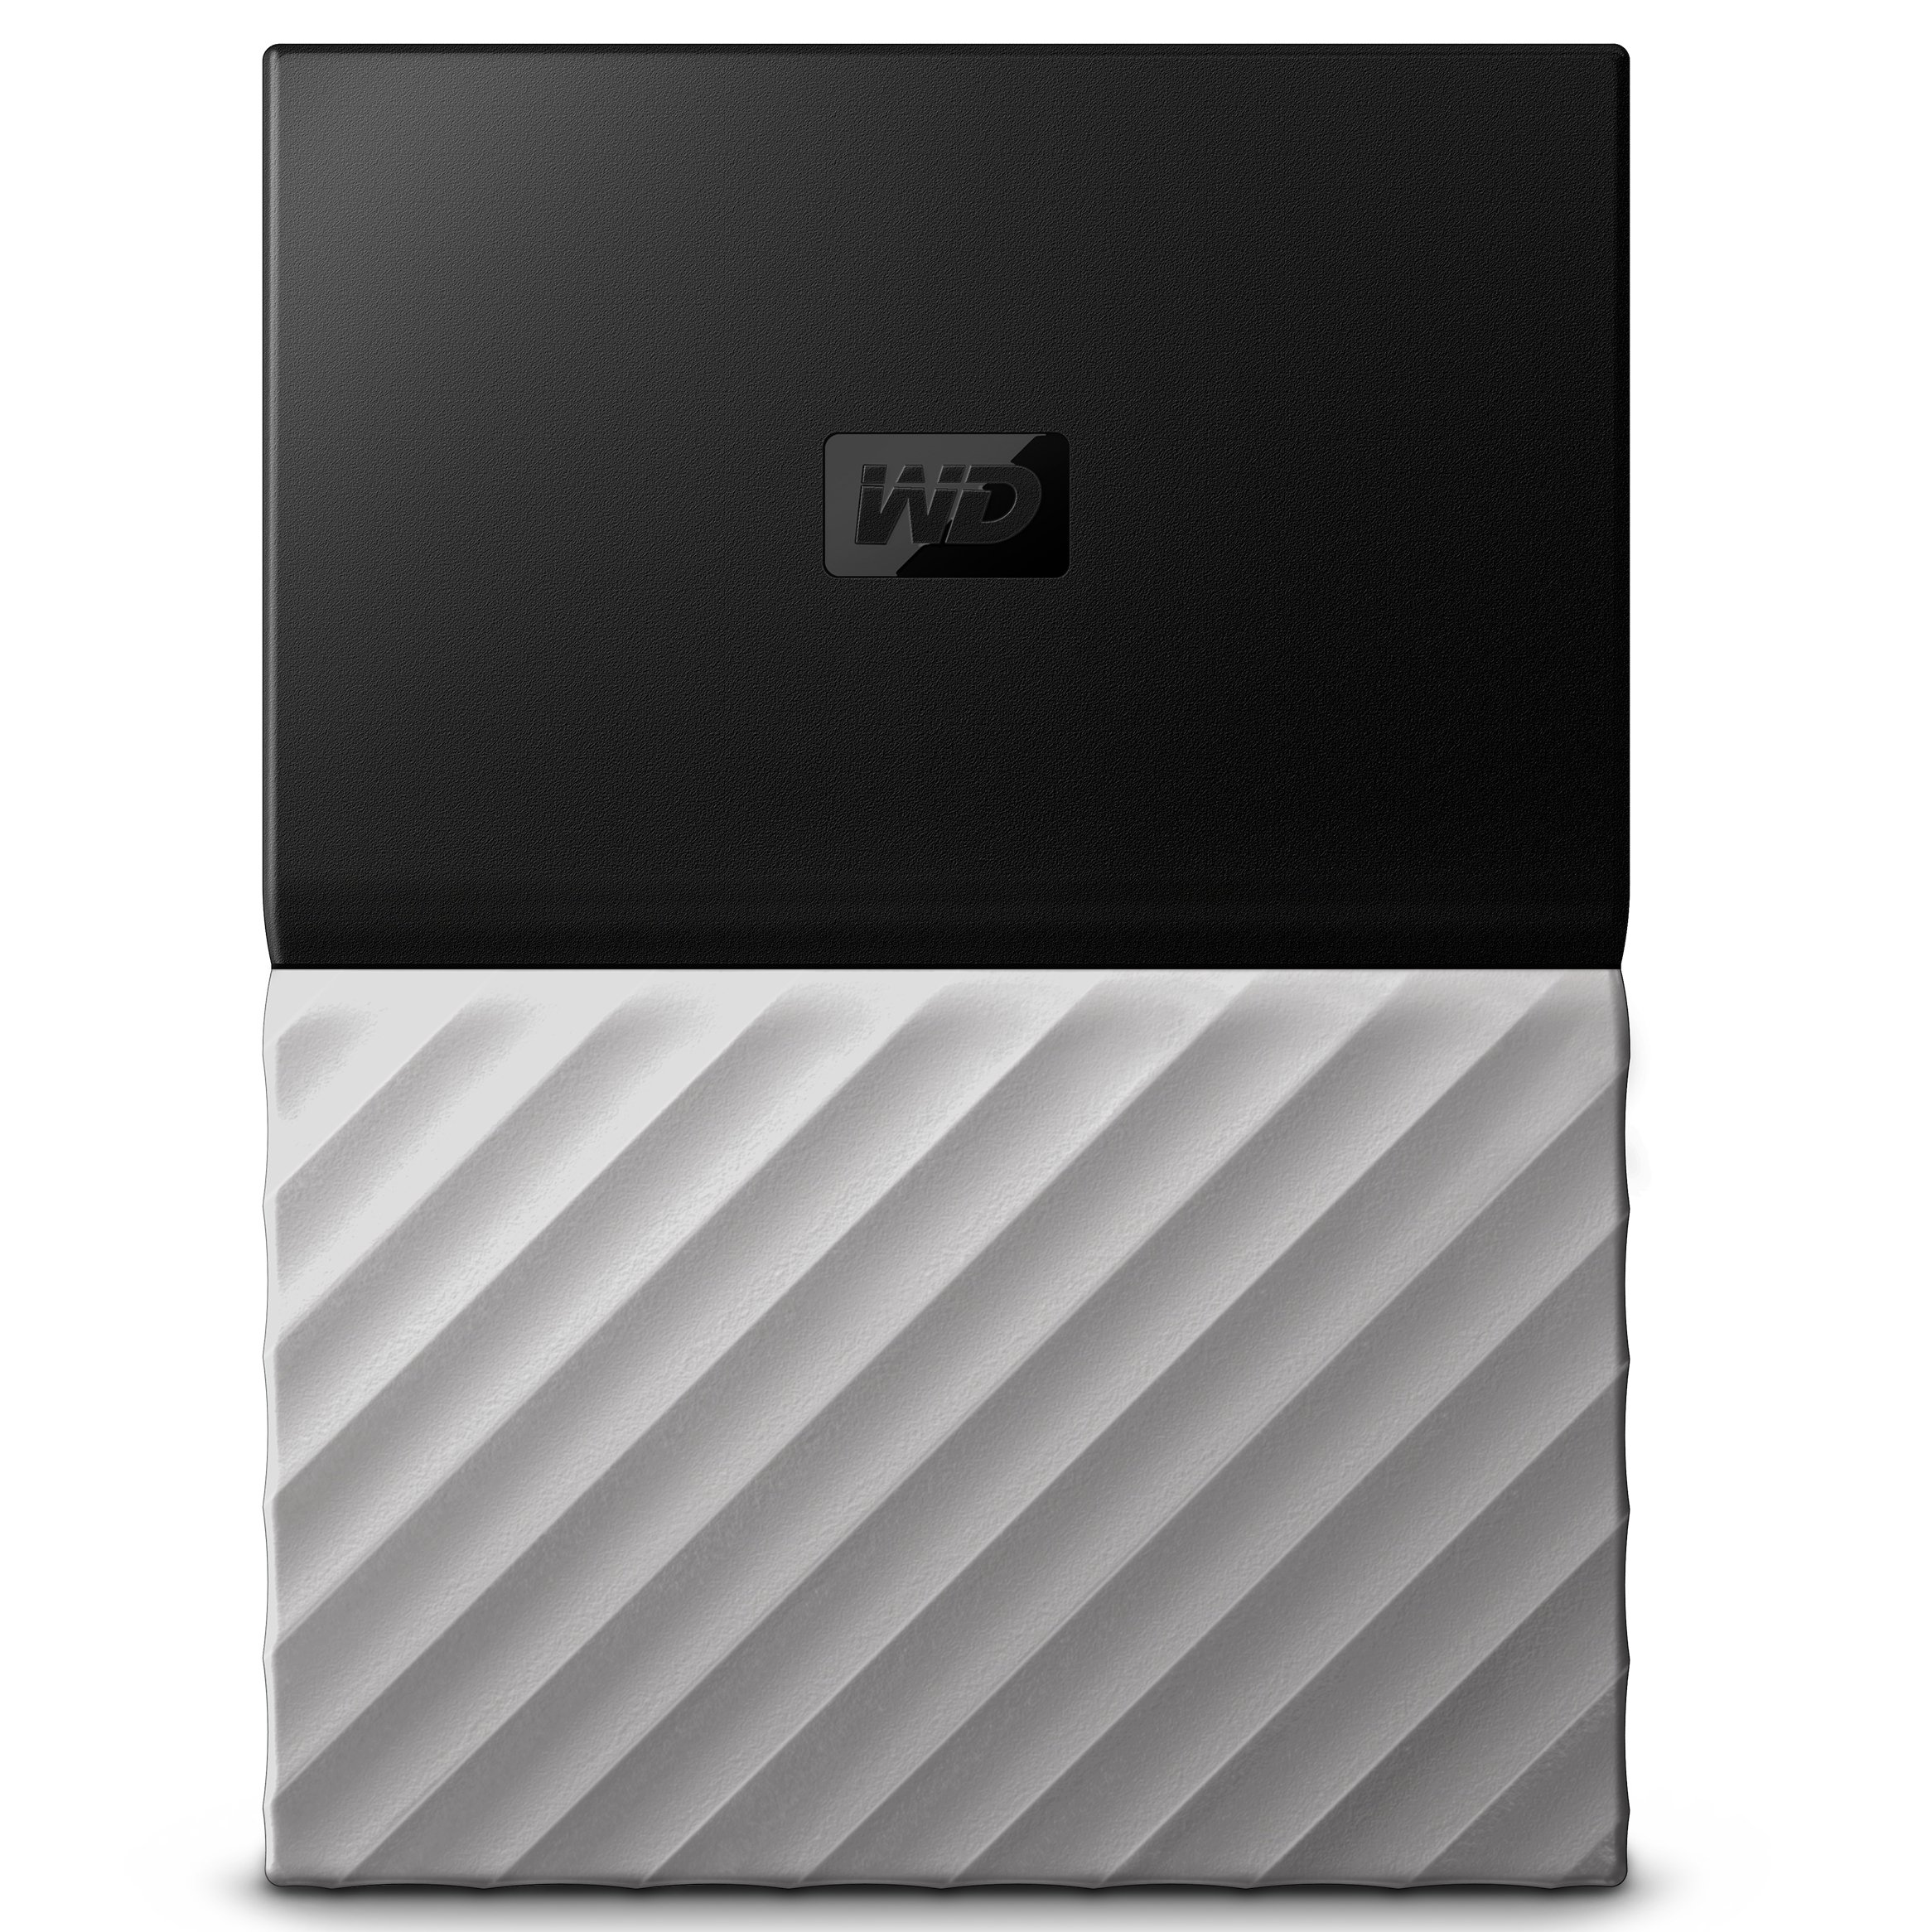 WD 2TB My Passport Ultra Portable External Hard Drive - USB 3.0 - Black-Gray - WDBFKT0020BGY-WESN